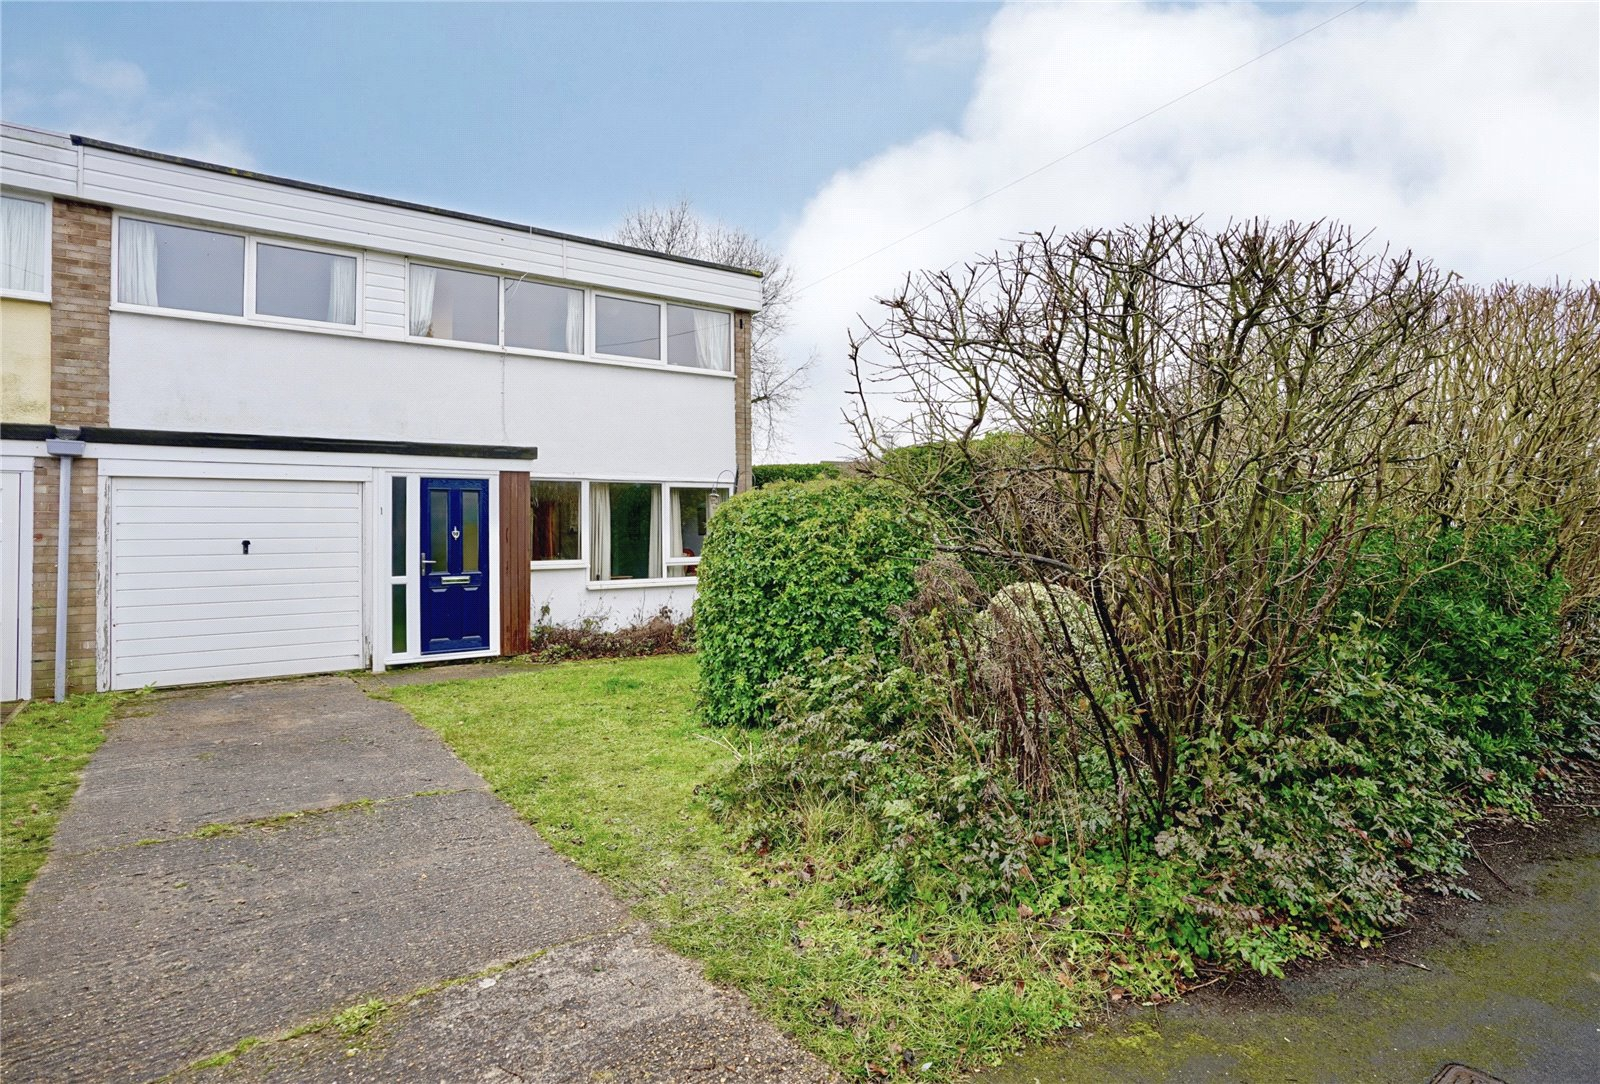 4 bed house for sale in Ouse Road, Eaton Ford  - Property Image 1